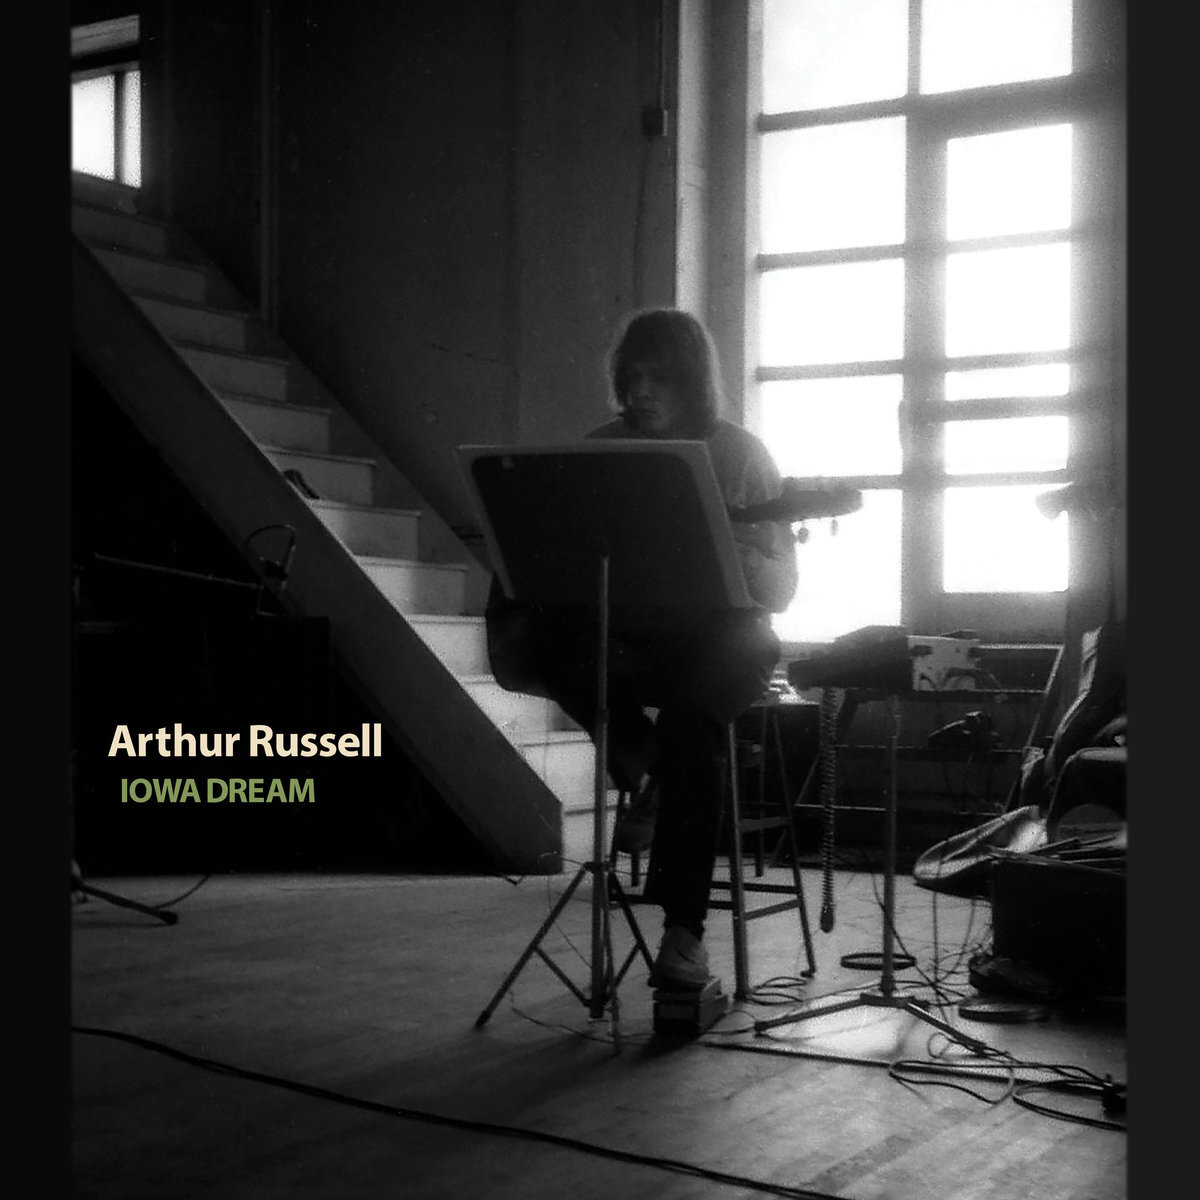 """How is it possible that there is this much amazing unreleased Arthur Russell music? So prolific. This album has some absolute stone cold gems on it, can't wait for the vinyl to show up!"" - - Andrew Jervis"